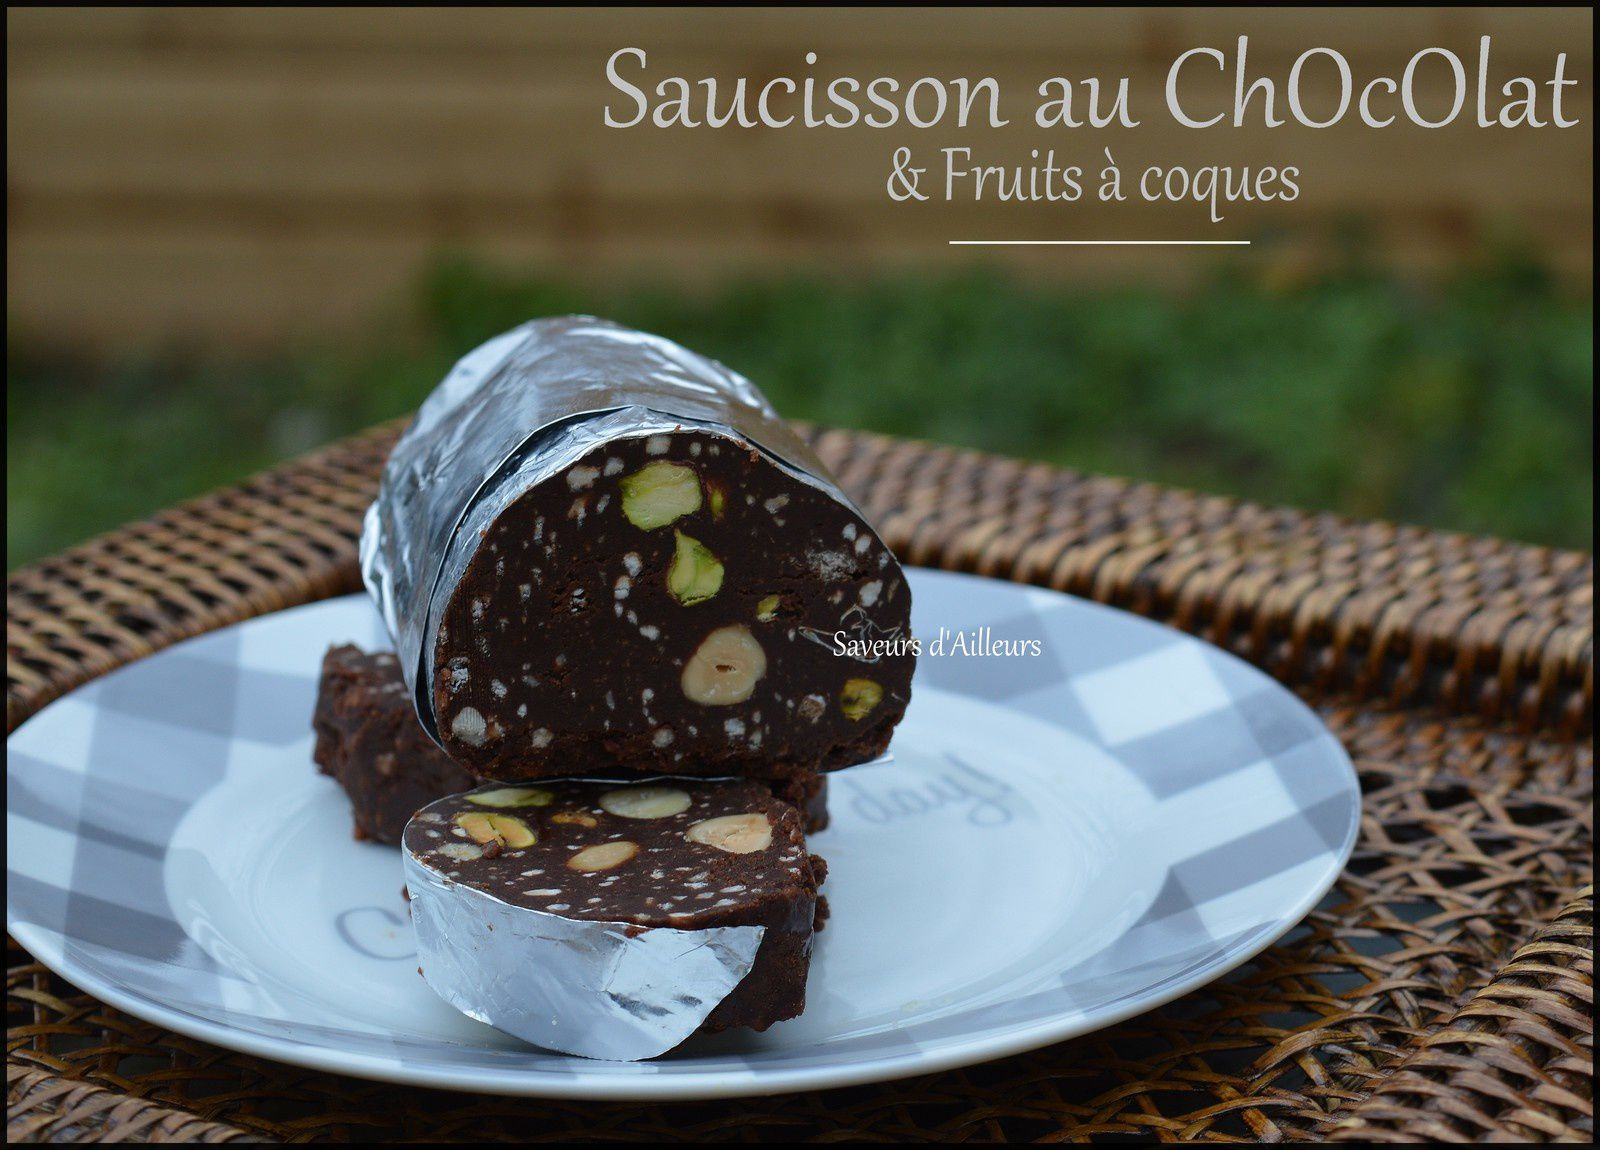 Saucisson au chocolat & fruits à coque